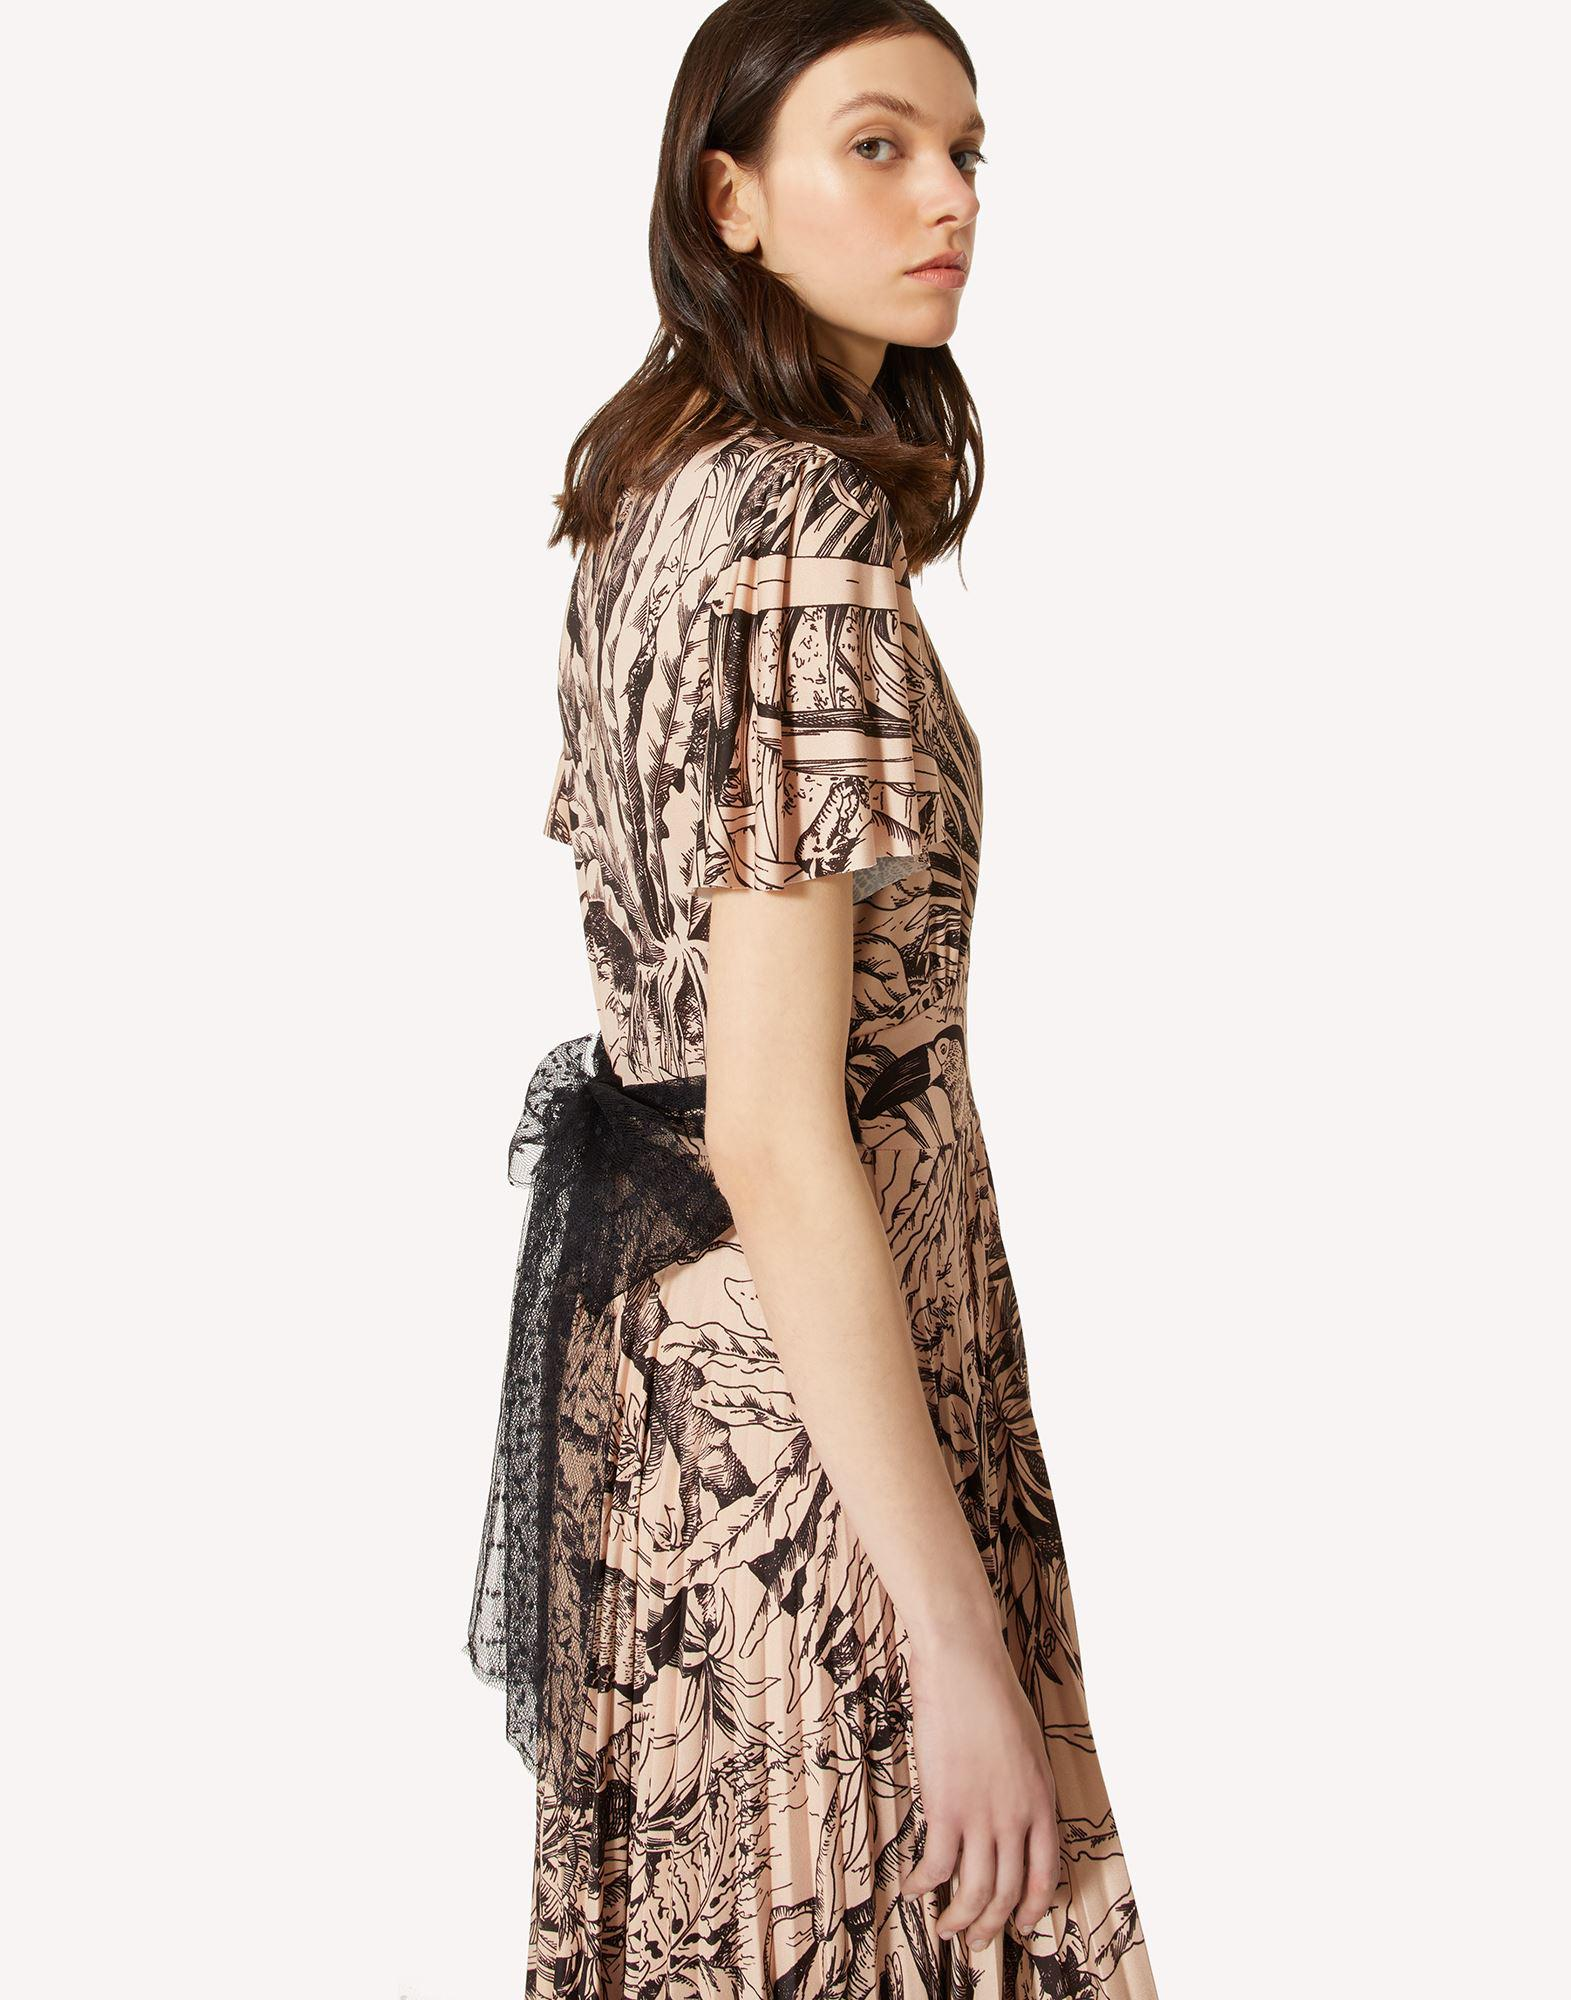 JERSEY DRESS WITH JUNGLE TOILE PRINT 3